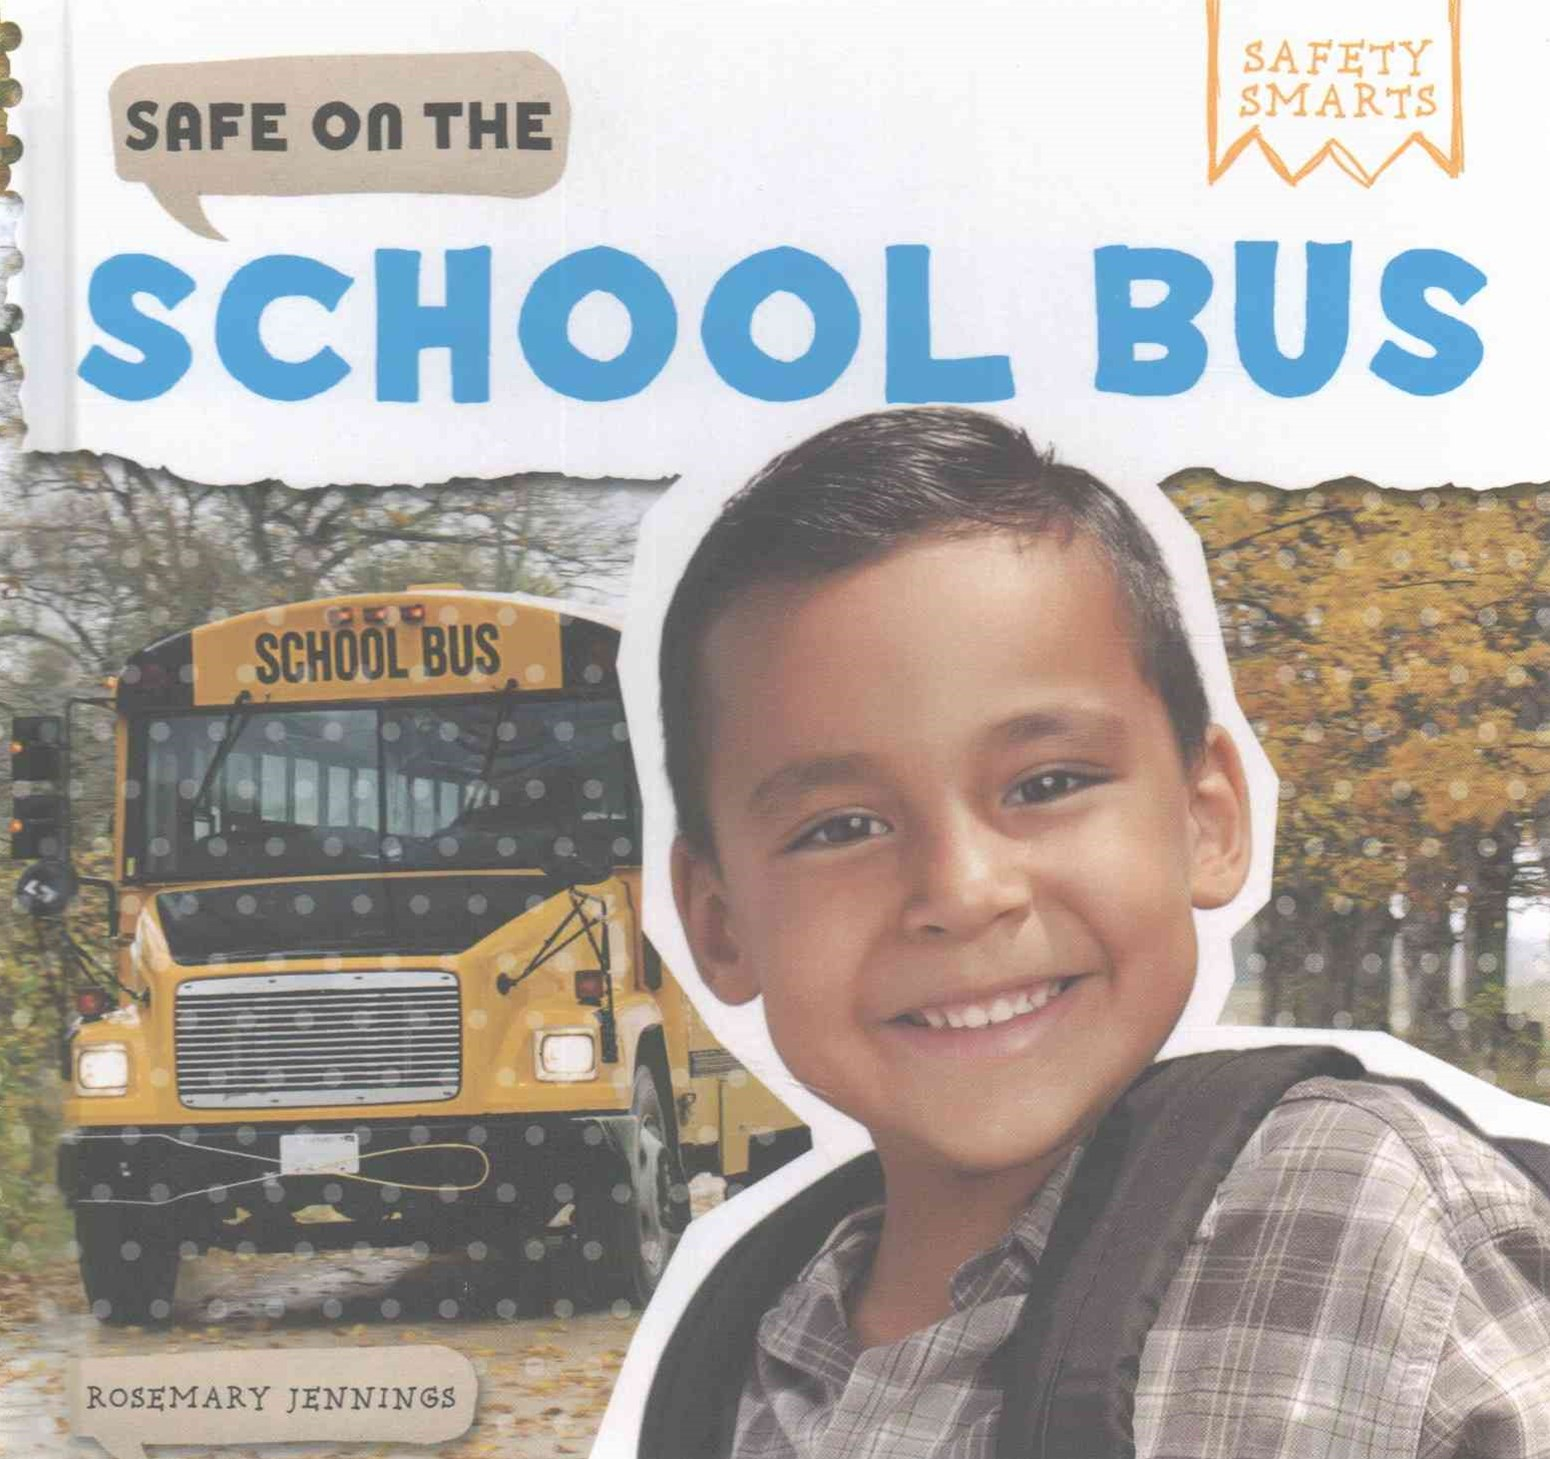 Safe on the School Bus